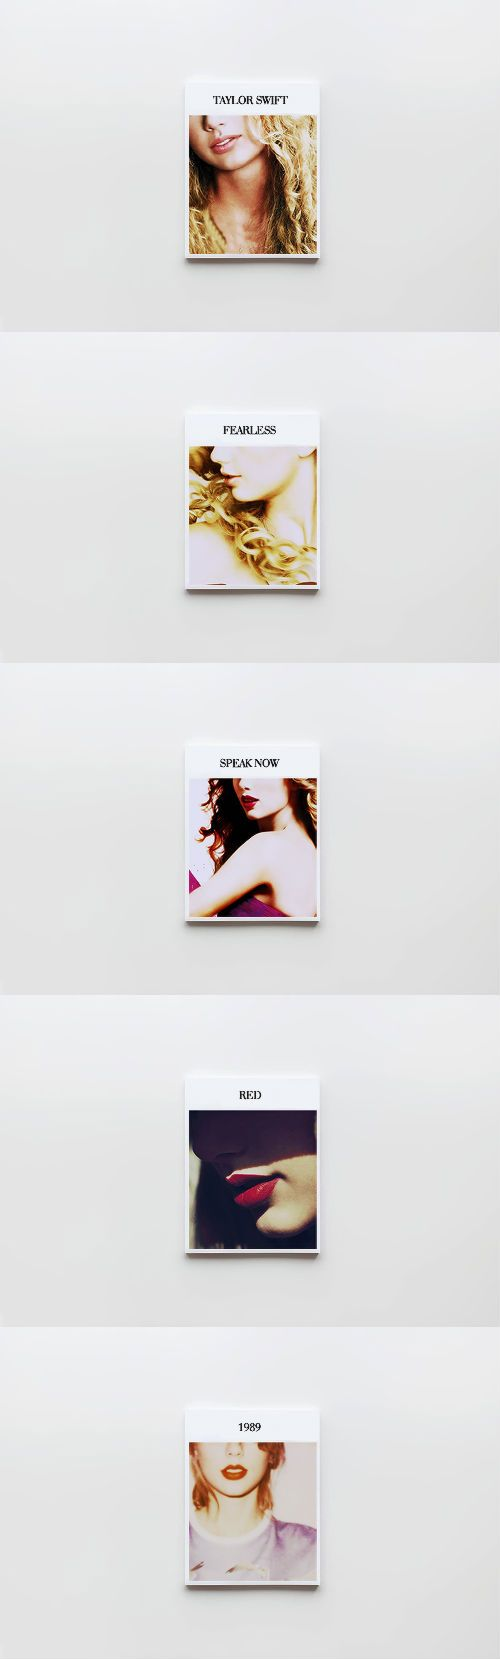 Taylor Swift album covers + lips